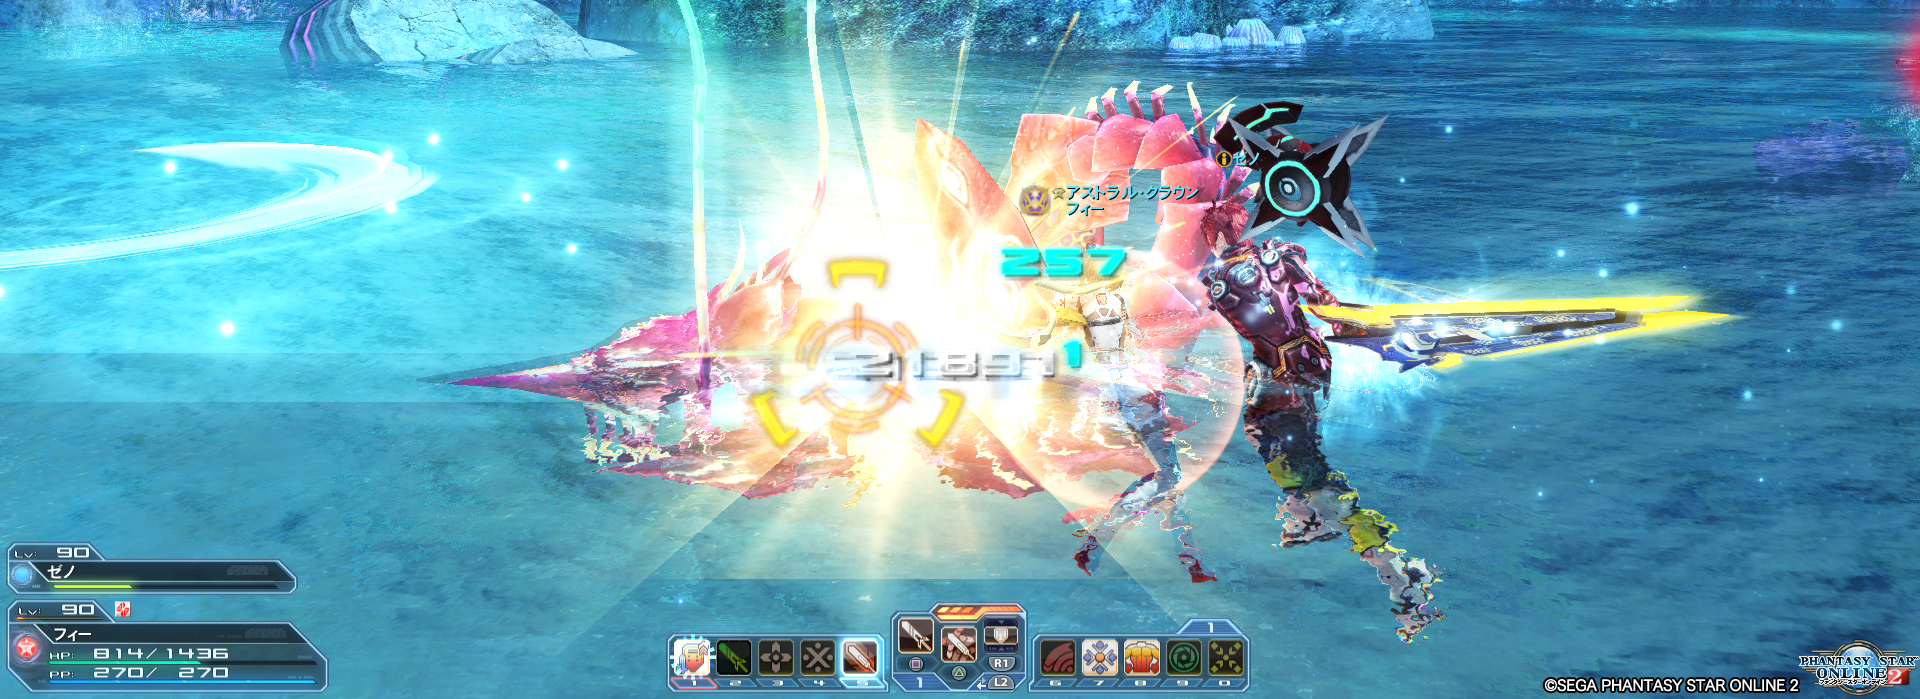 pso20191220130733a.png